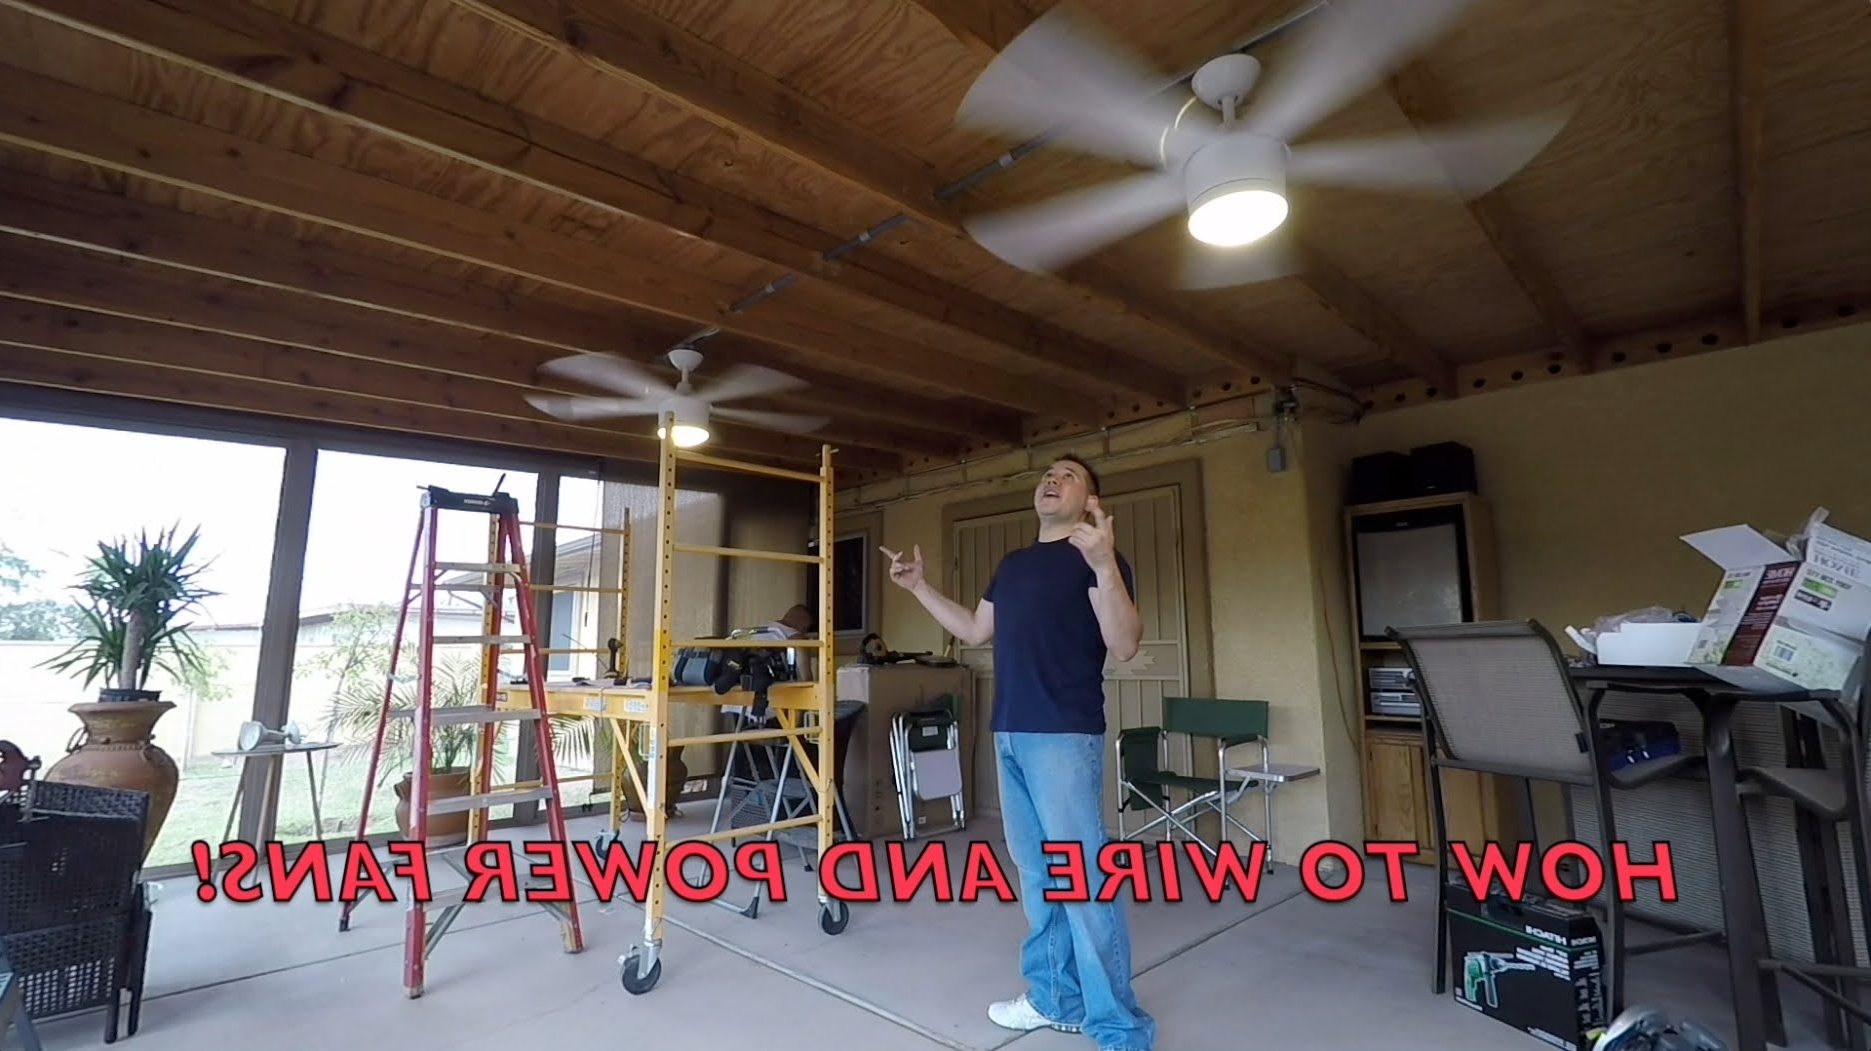 2019 Outdoor Ceiling Fan Under Deck Intended For How To Install Outside Ceiling Fans ***with Conduit*** Diy!!! – Youtube (Gallery 12 of 20)